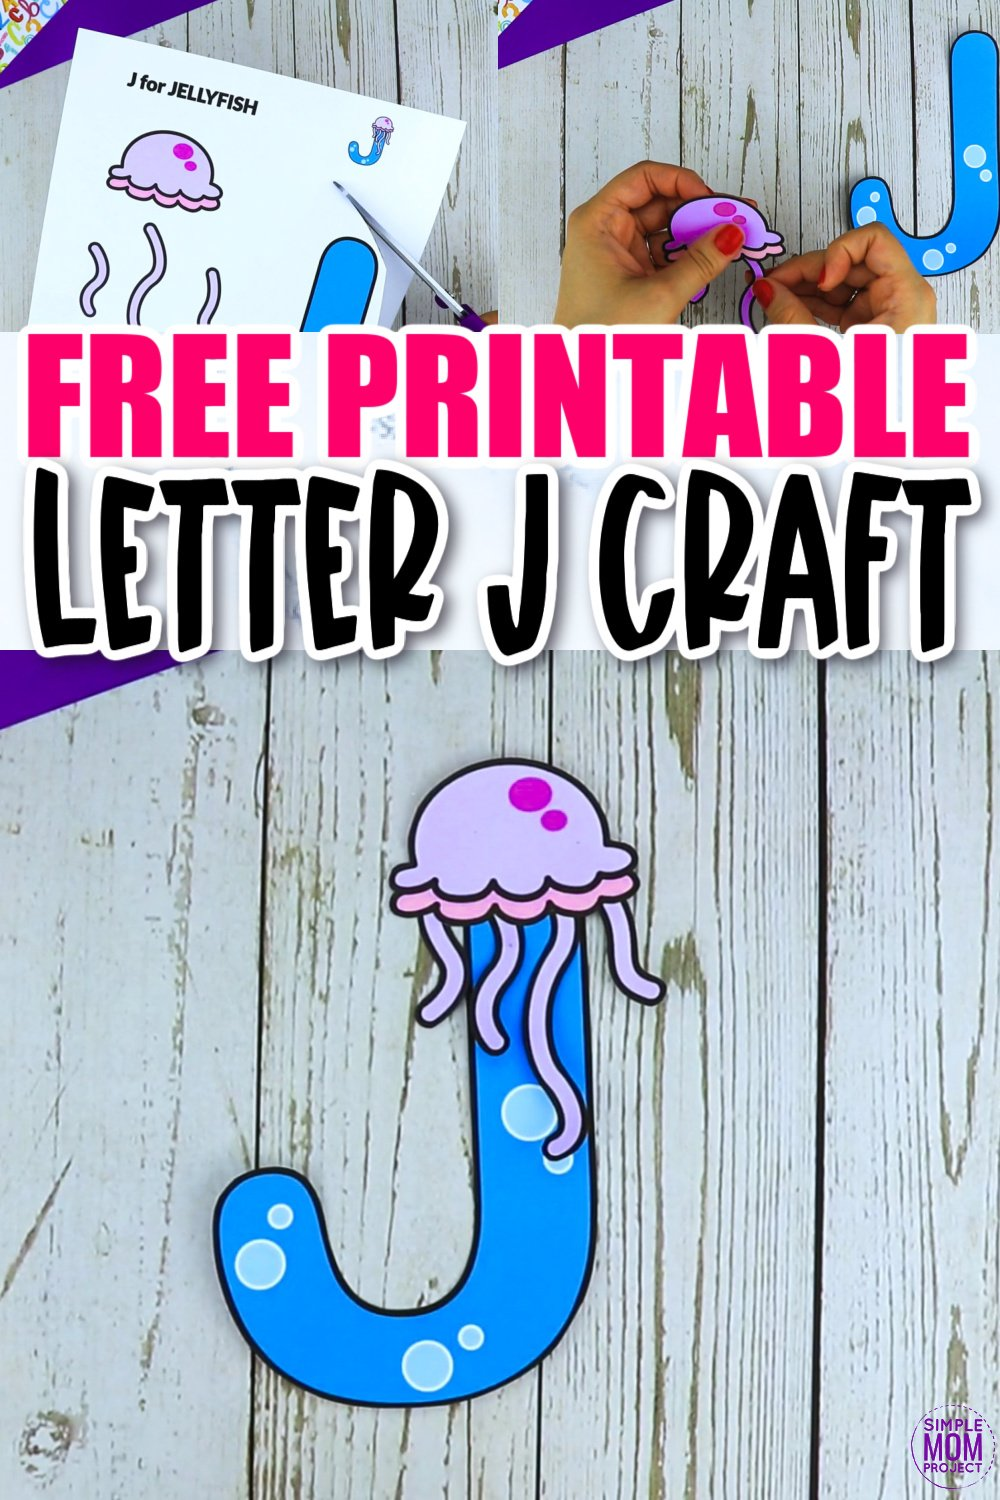 J is for Jellyfish Printable Craft Letter J Craft for Kids, preschoolers, toddlers and kindergartners